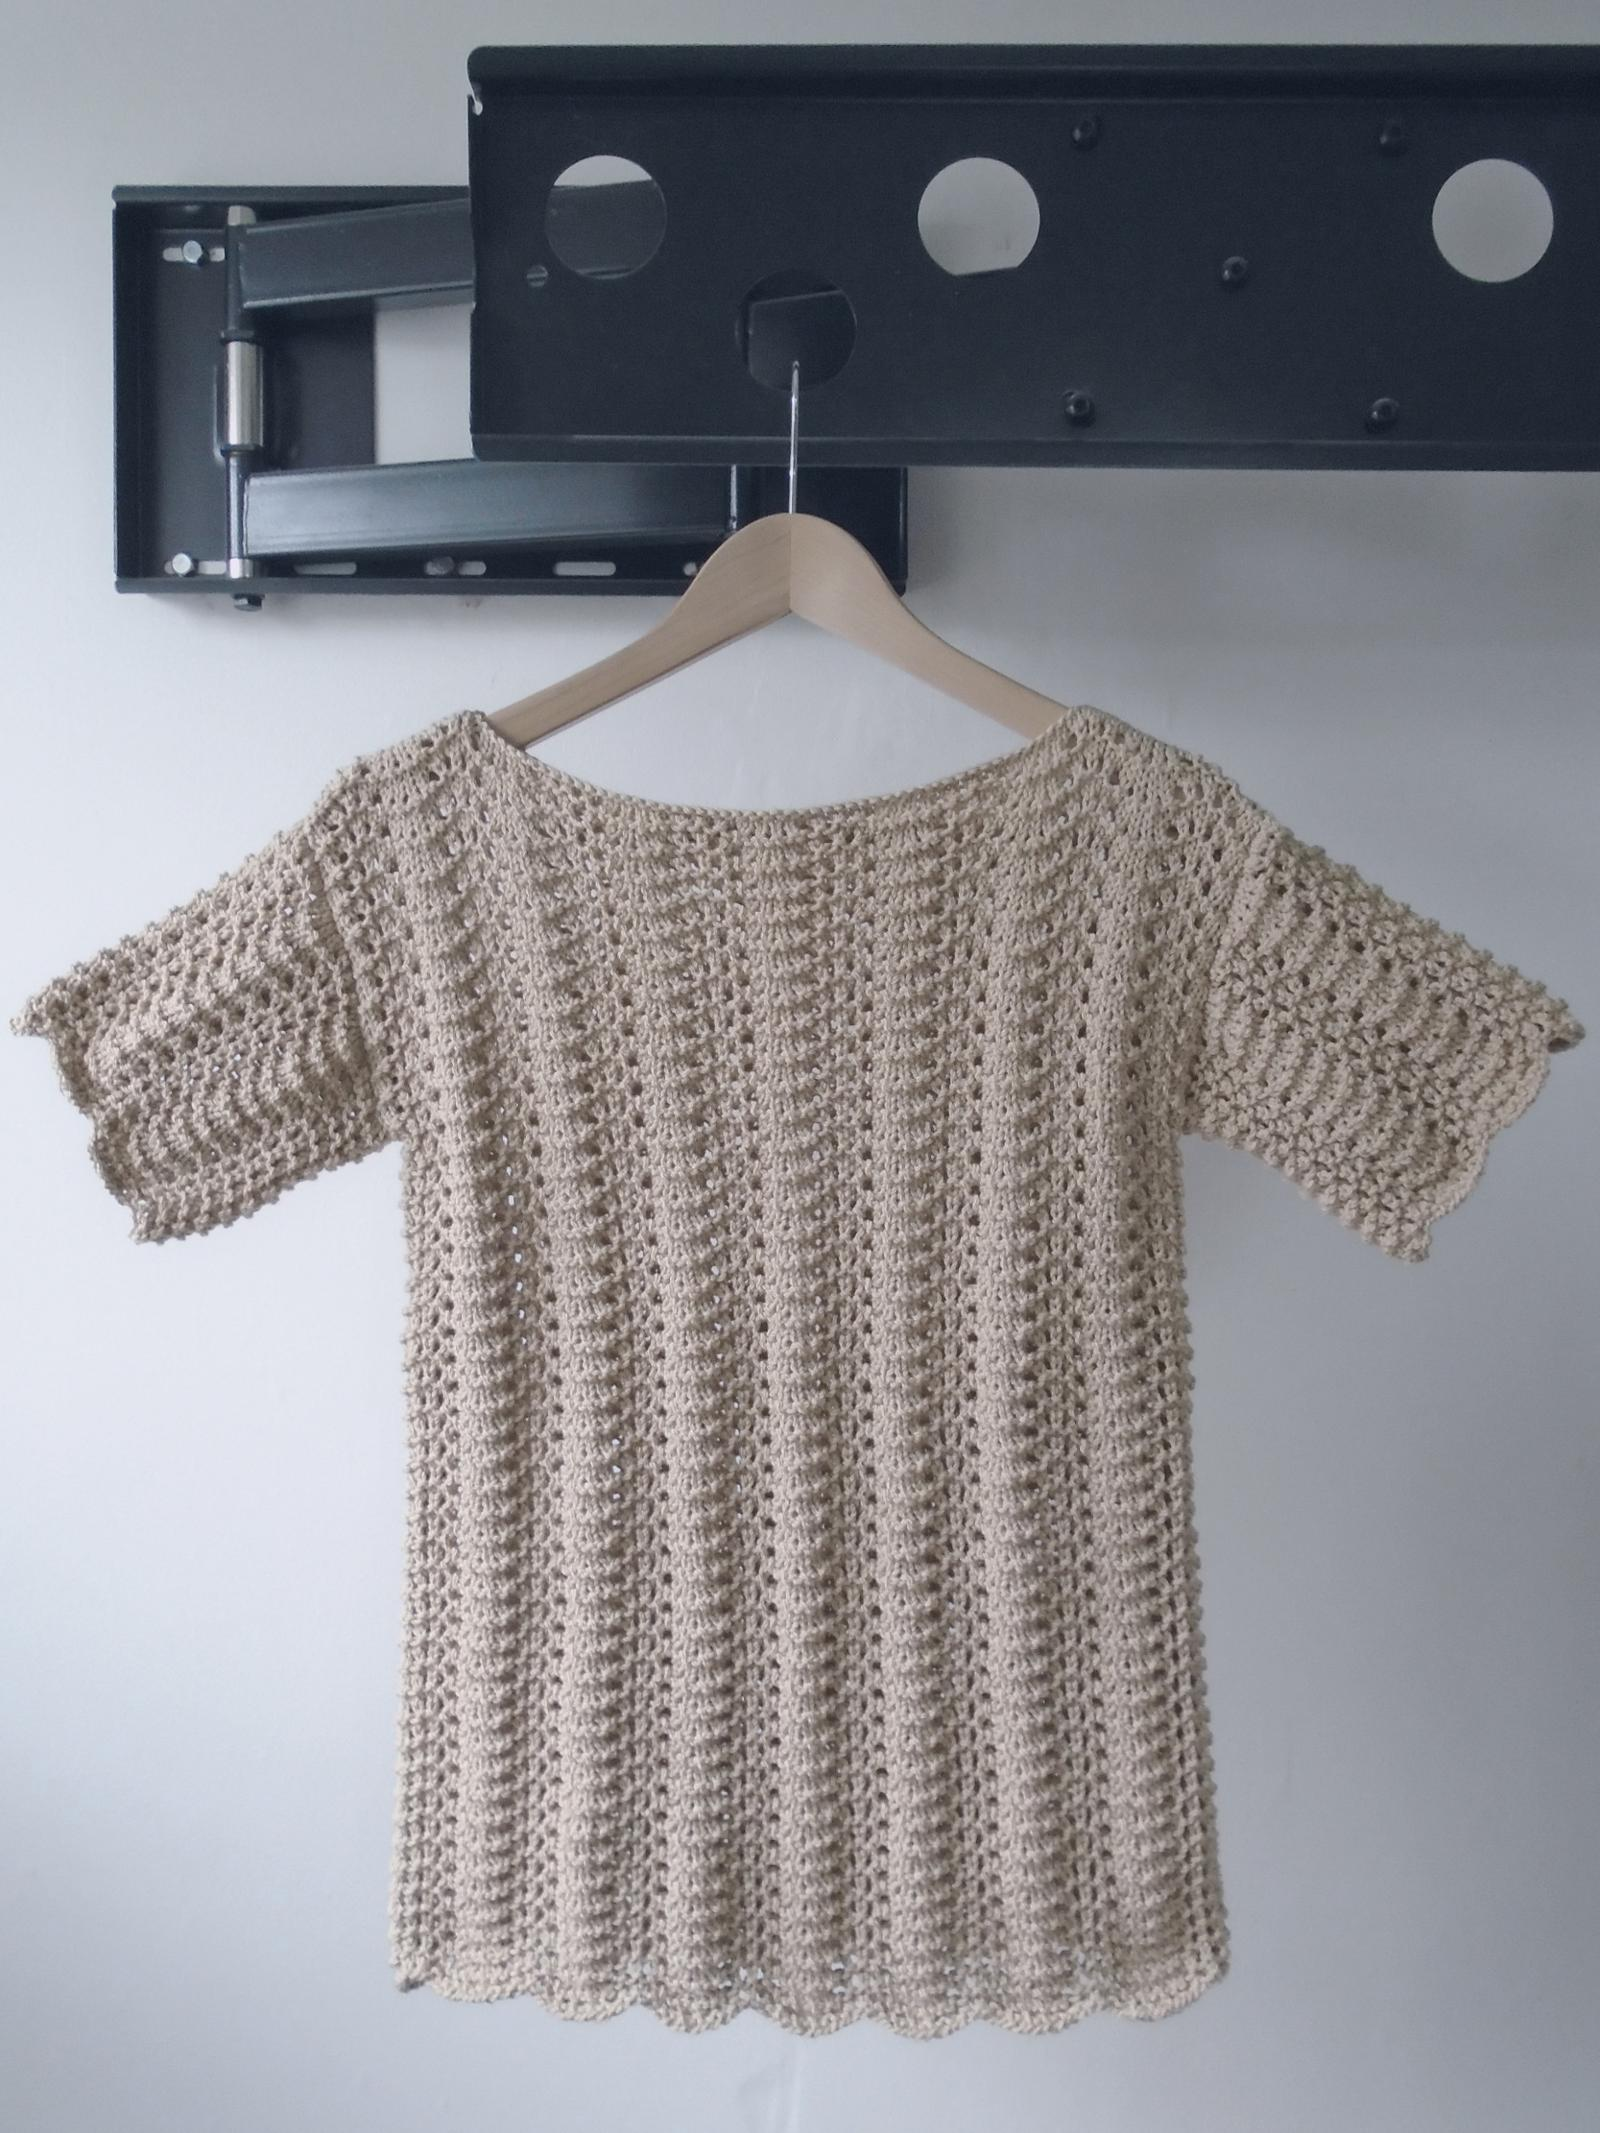 Linen and Lace Tee Knitting Pattern